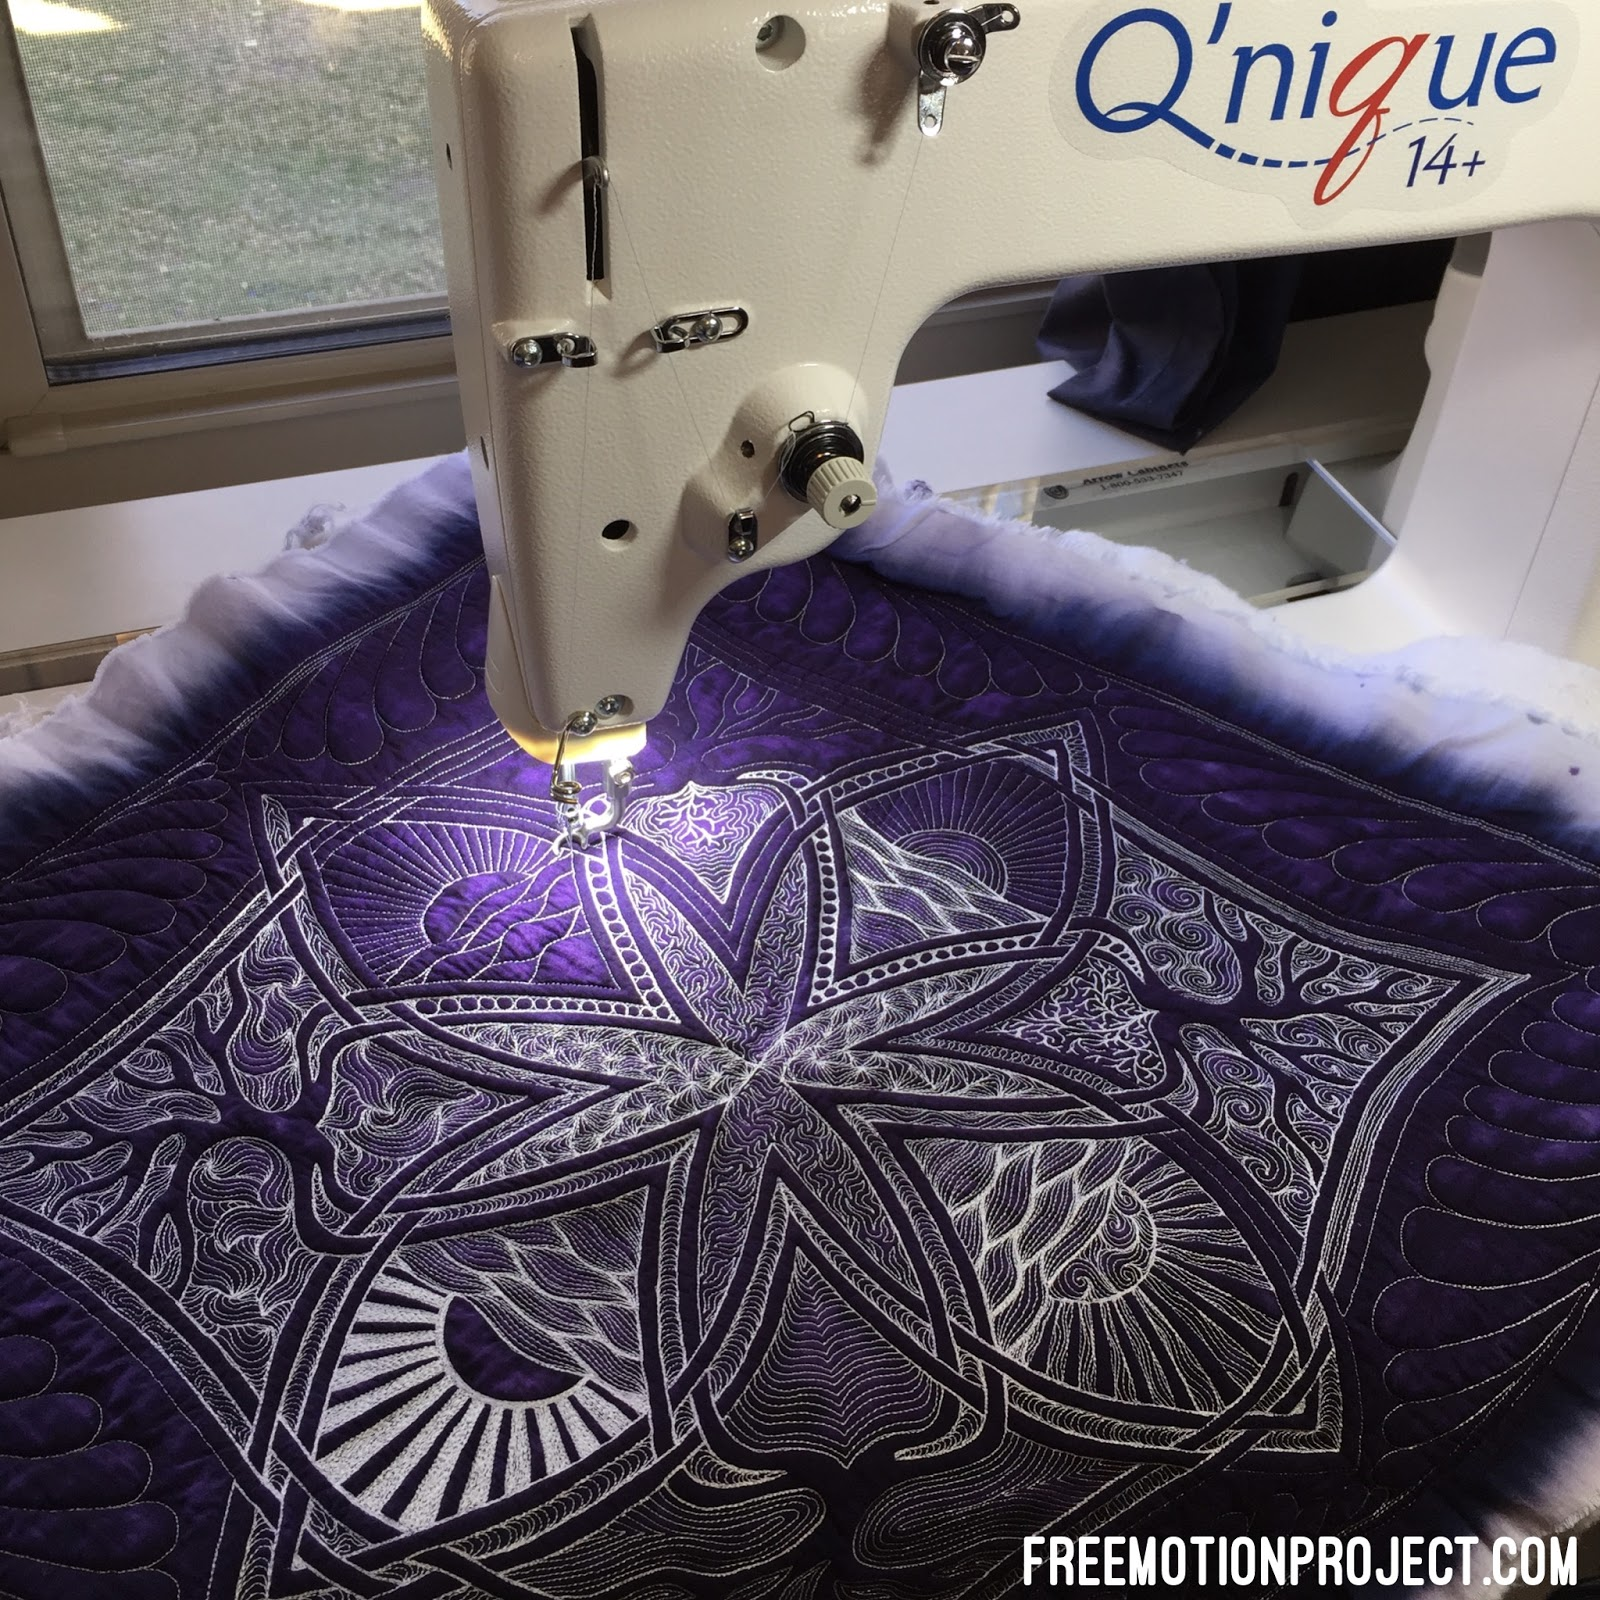 Quilting Slider Mat: The Free Motion Quilting Project: Dense Quilting On A